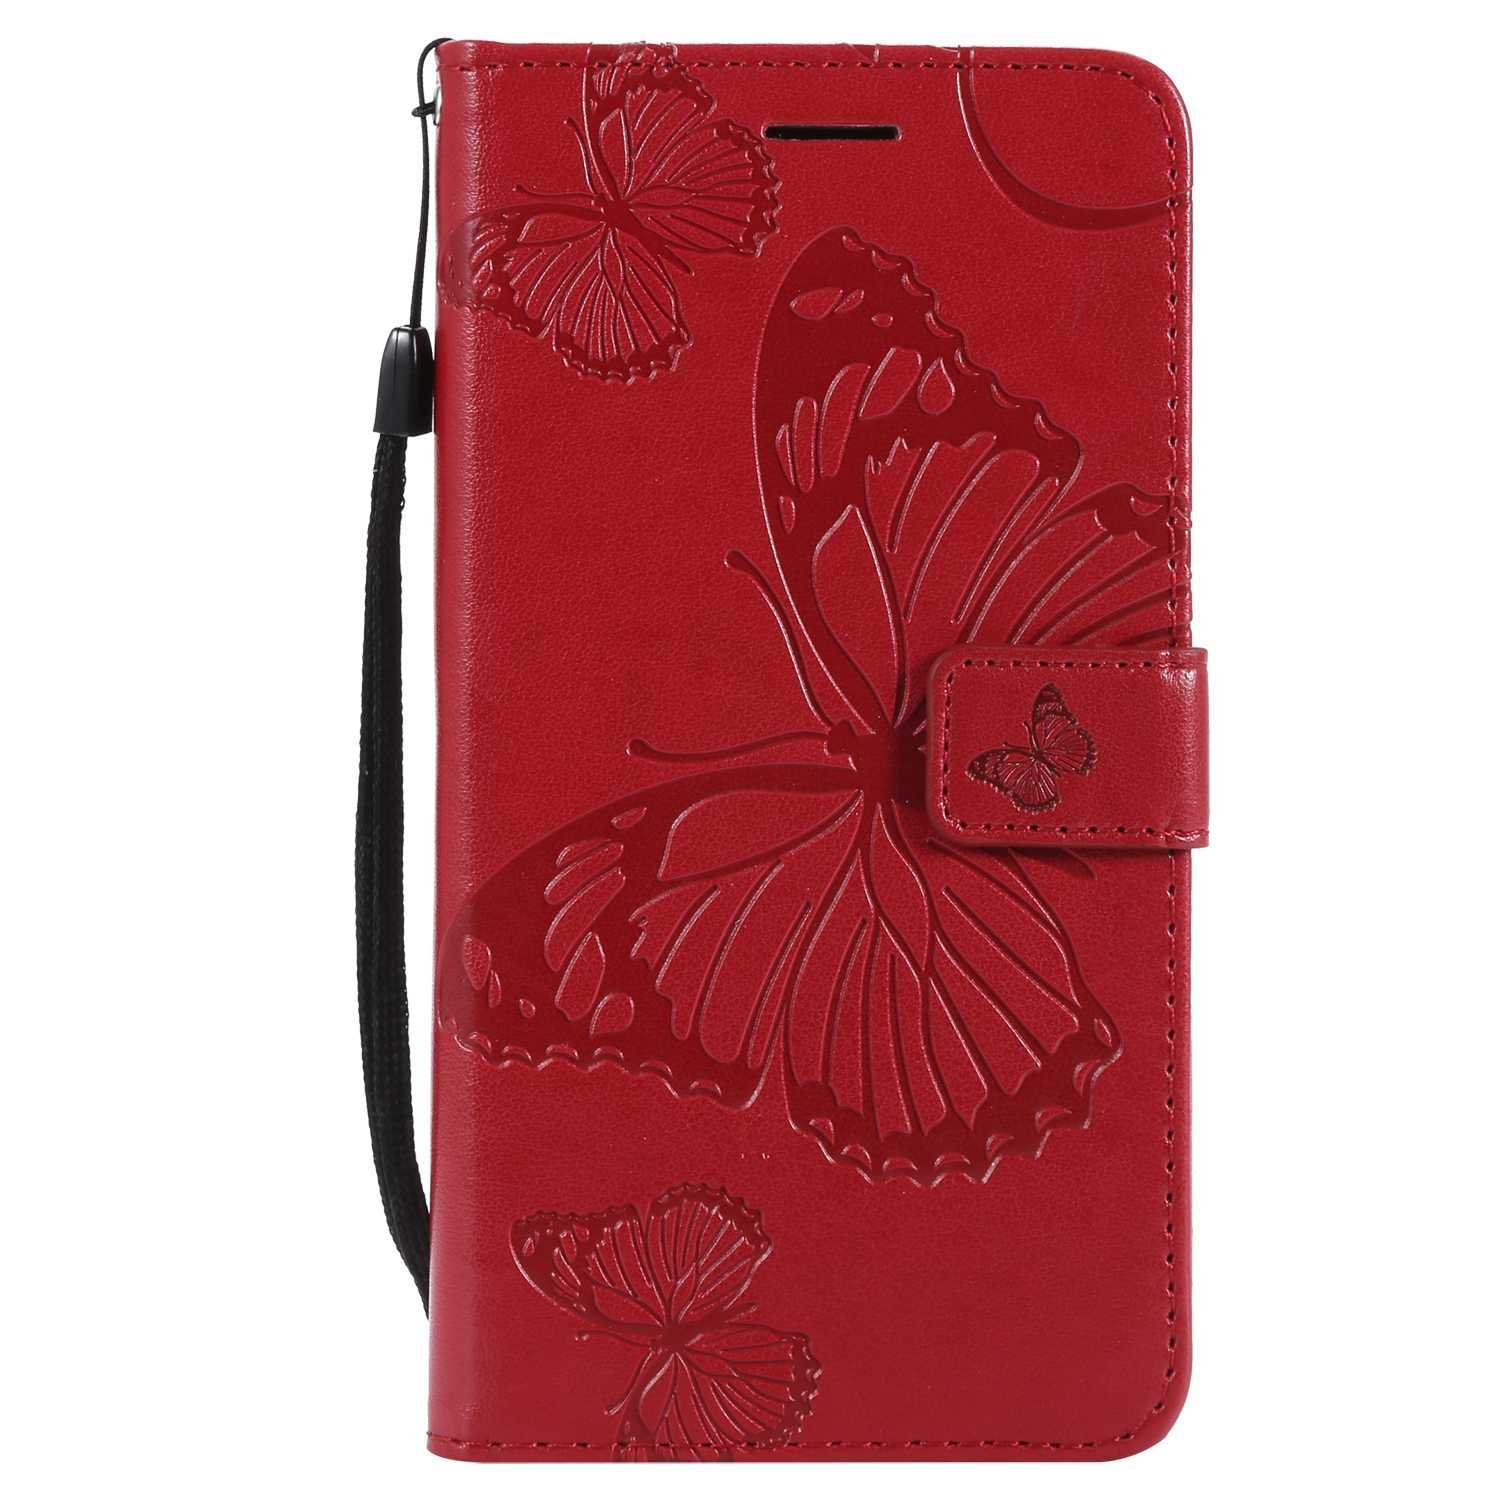 CUSKING Case for Samsung Galaxy J7 2016, Leather Flip Cover Magnetic Wallet Case with Butterfly Embossed Design, Case with Card Holders and Kickstand - Red